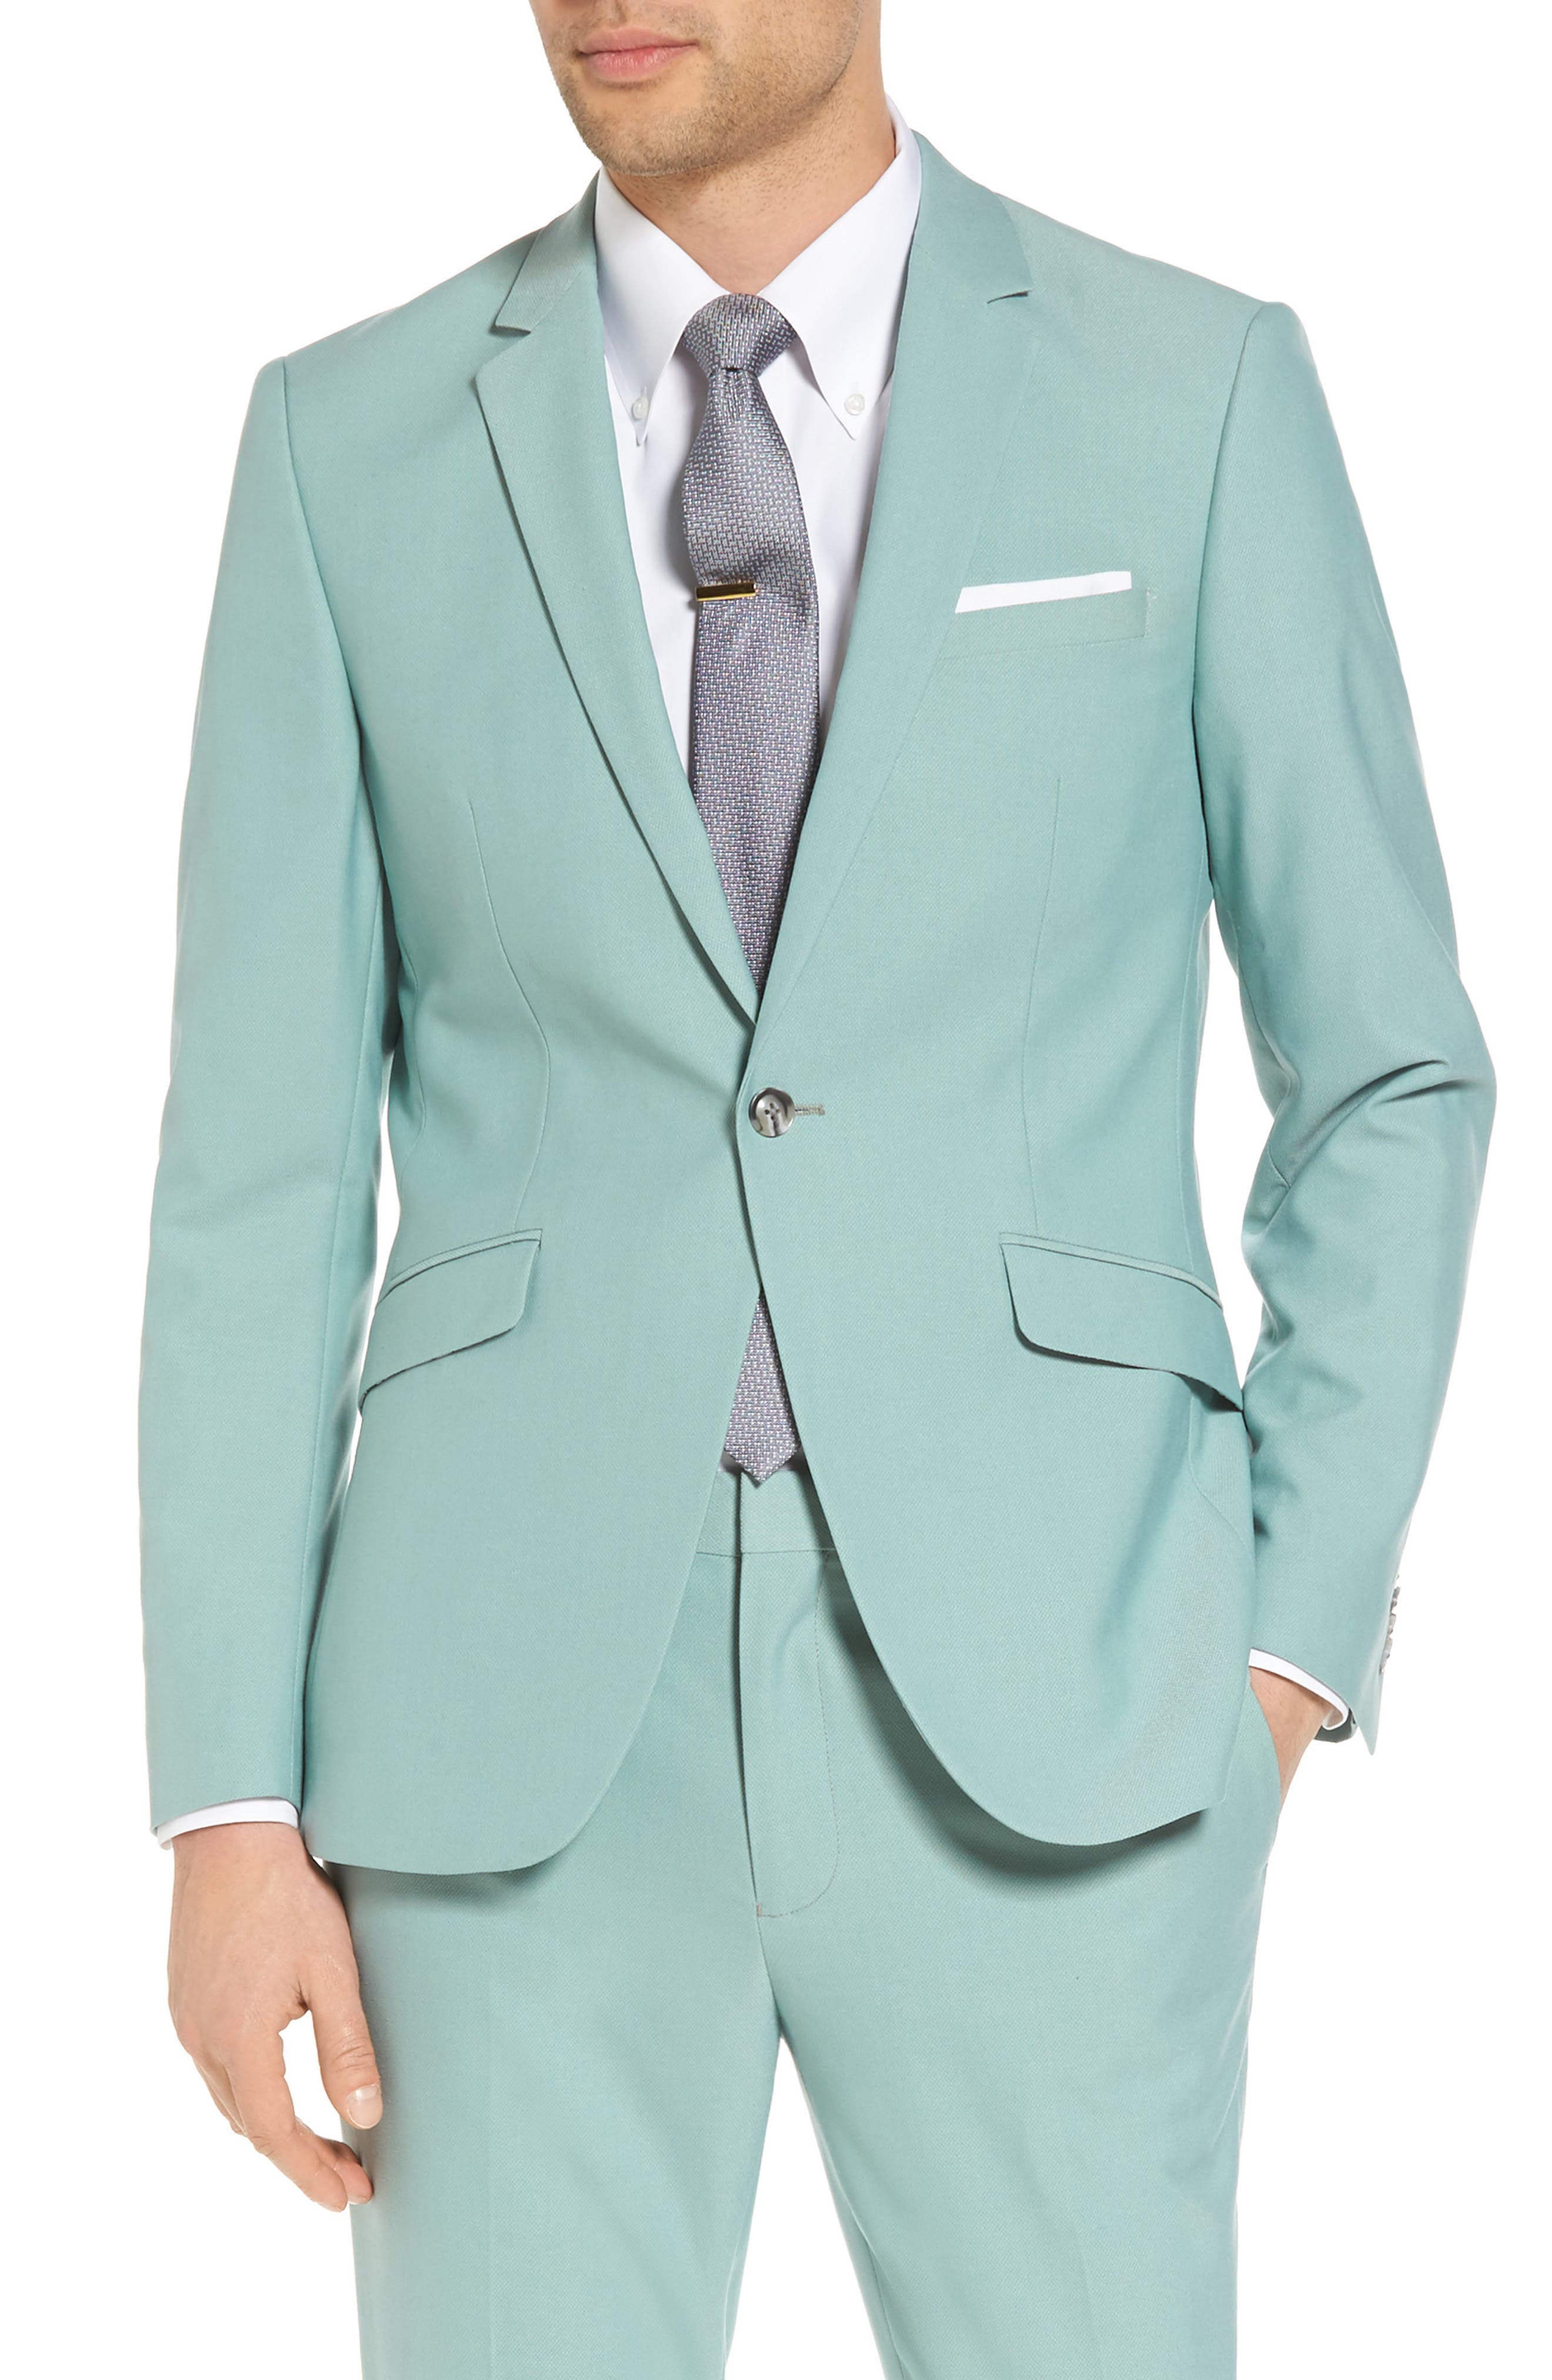 Skinny Fit Suit Jacket,                             Main thumbnail 1, color,                             Green